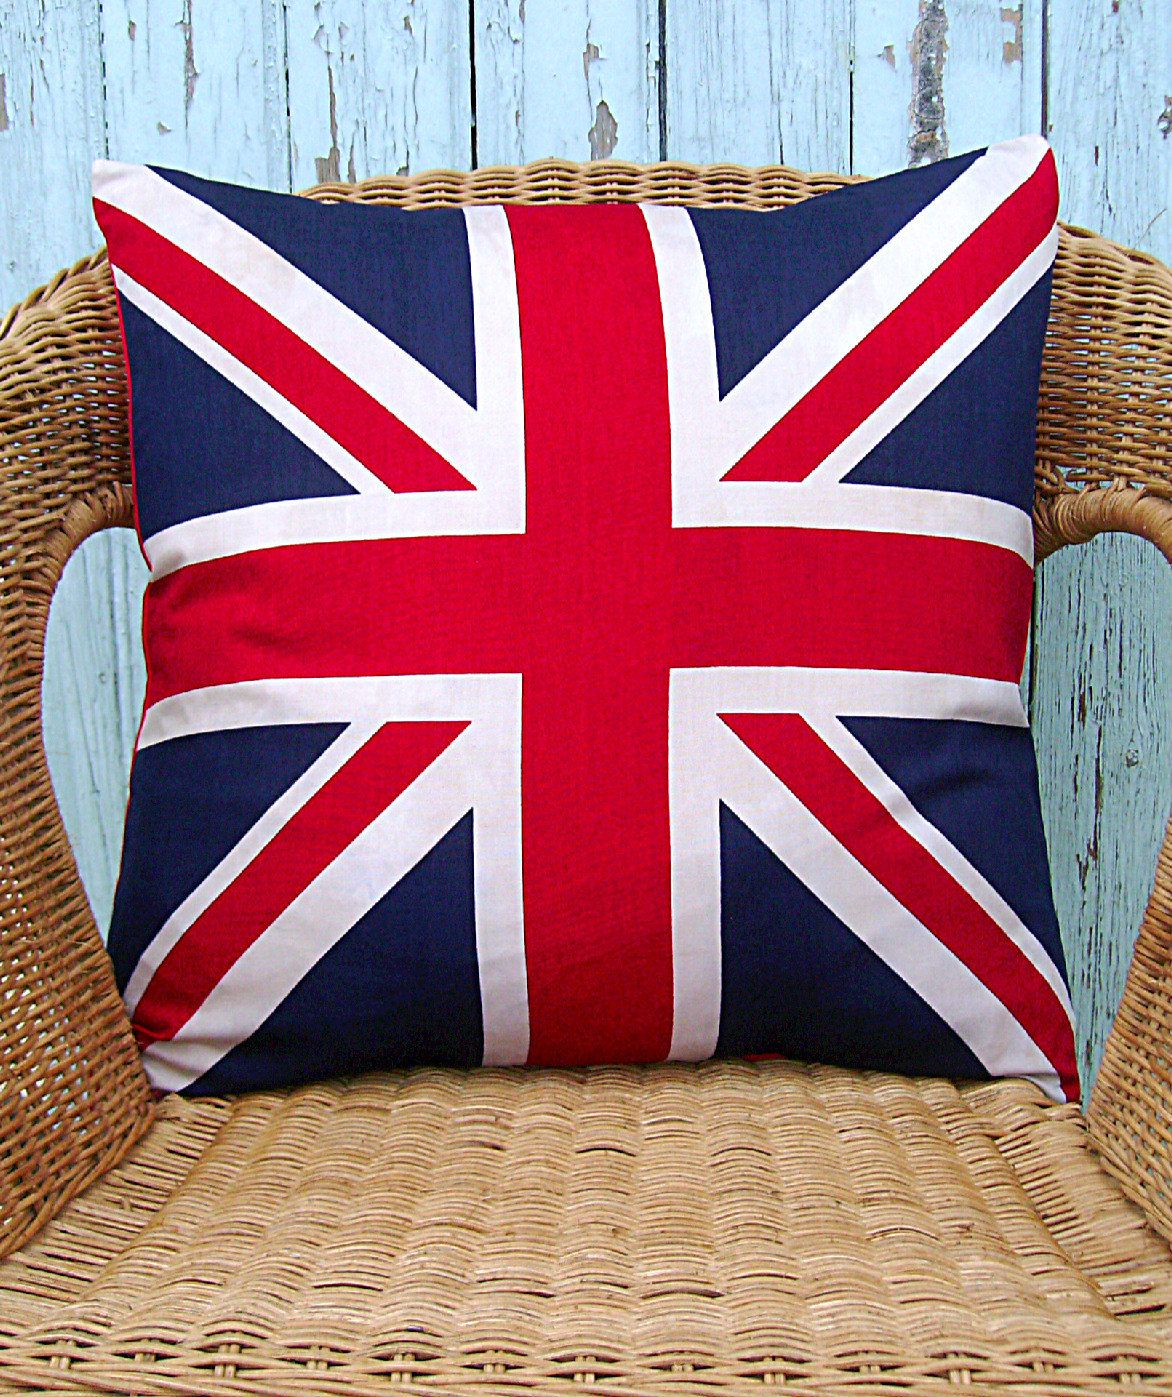 Union Jack Pillow Cover British Pillow 16 Inch Pillow 21 50